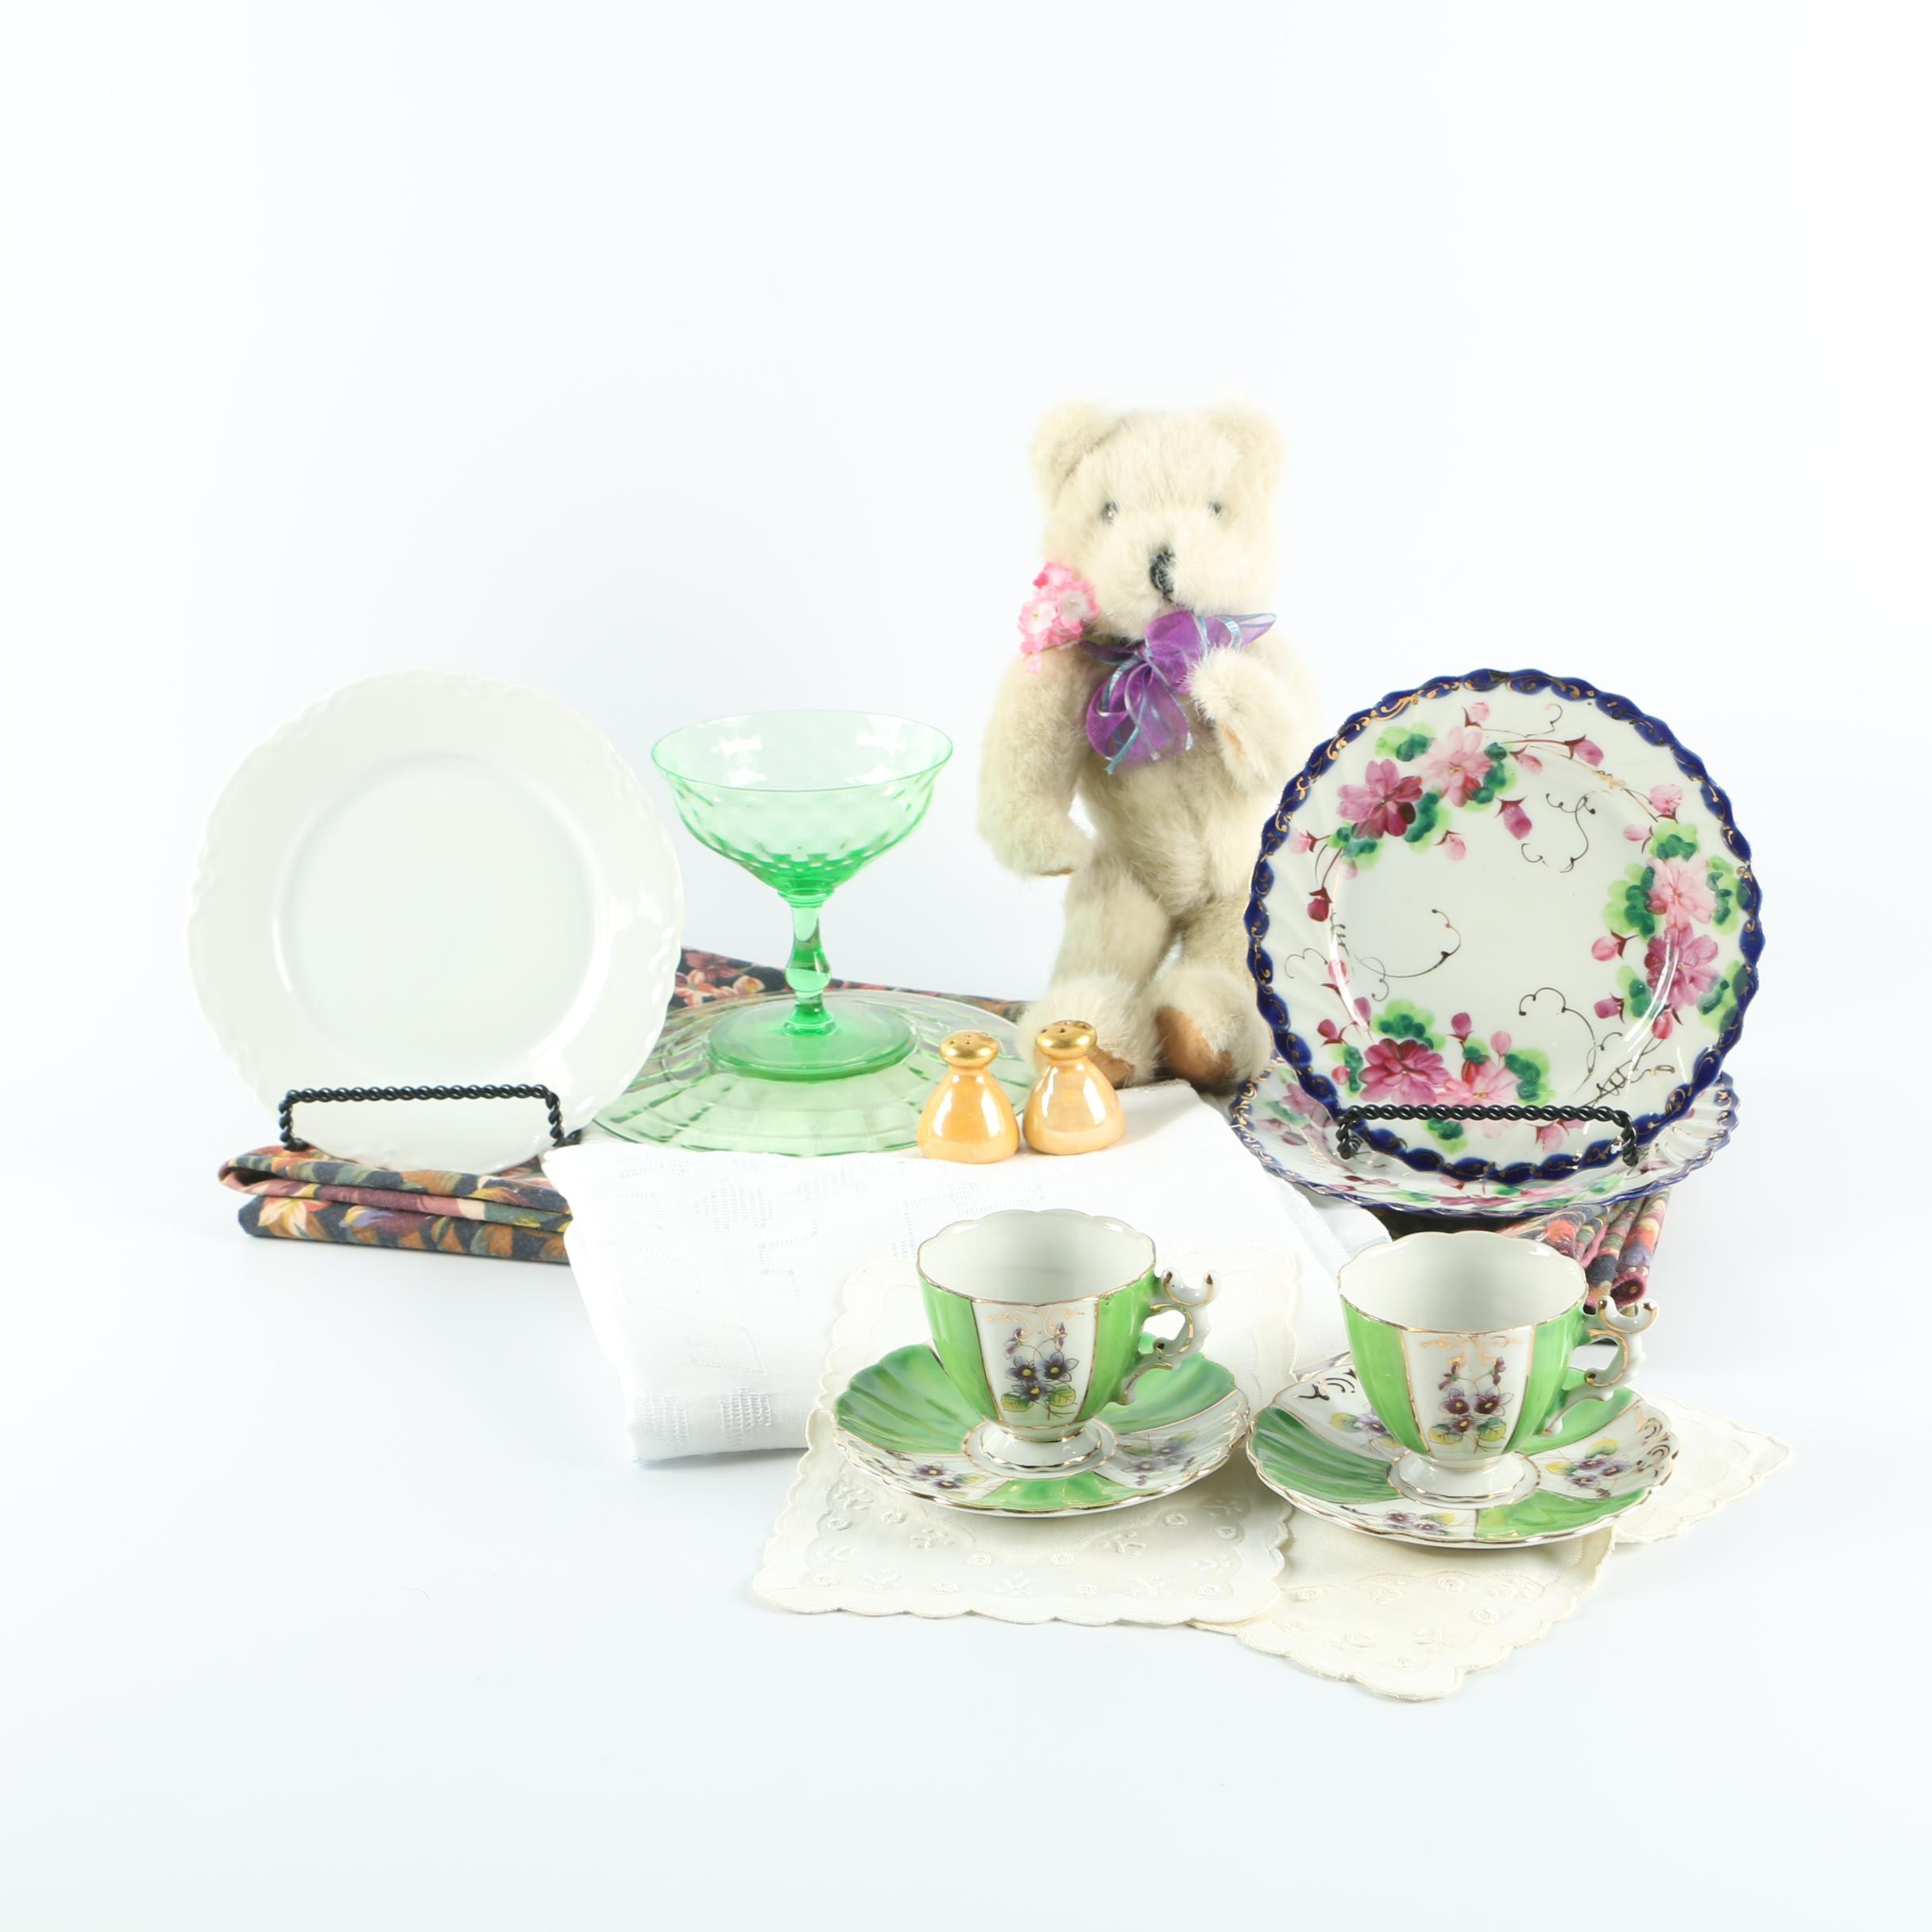 Teddy Bear, Tea Cups and More Featuring Hutschenreuther and Royal Sealy